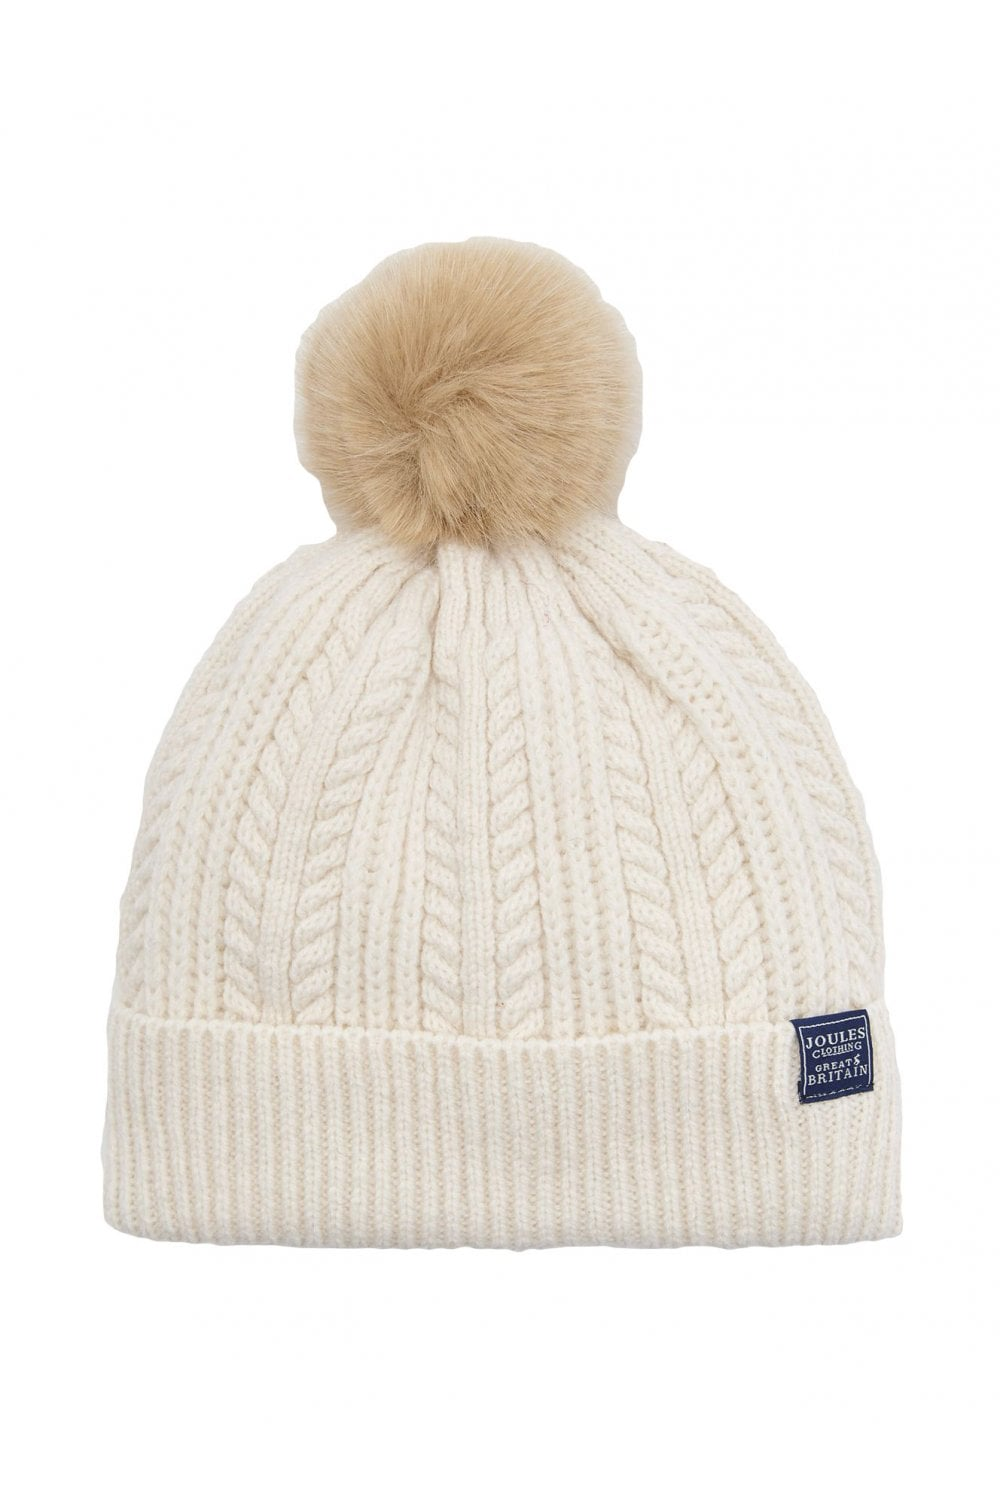 Joules Womens Bobble Cable Knit Hat - Cream - Womenswear from ... 42419ad4e43